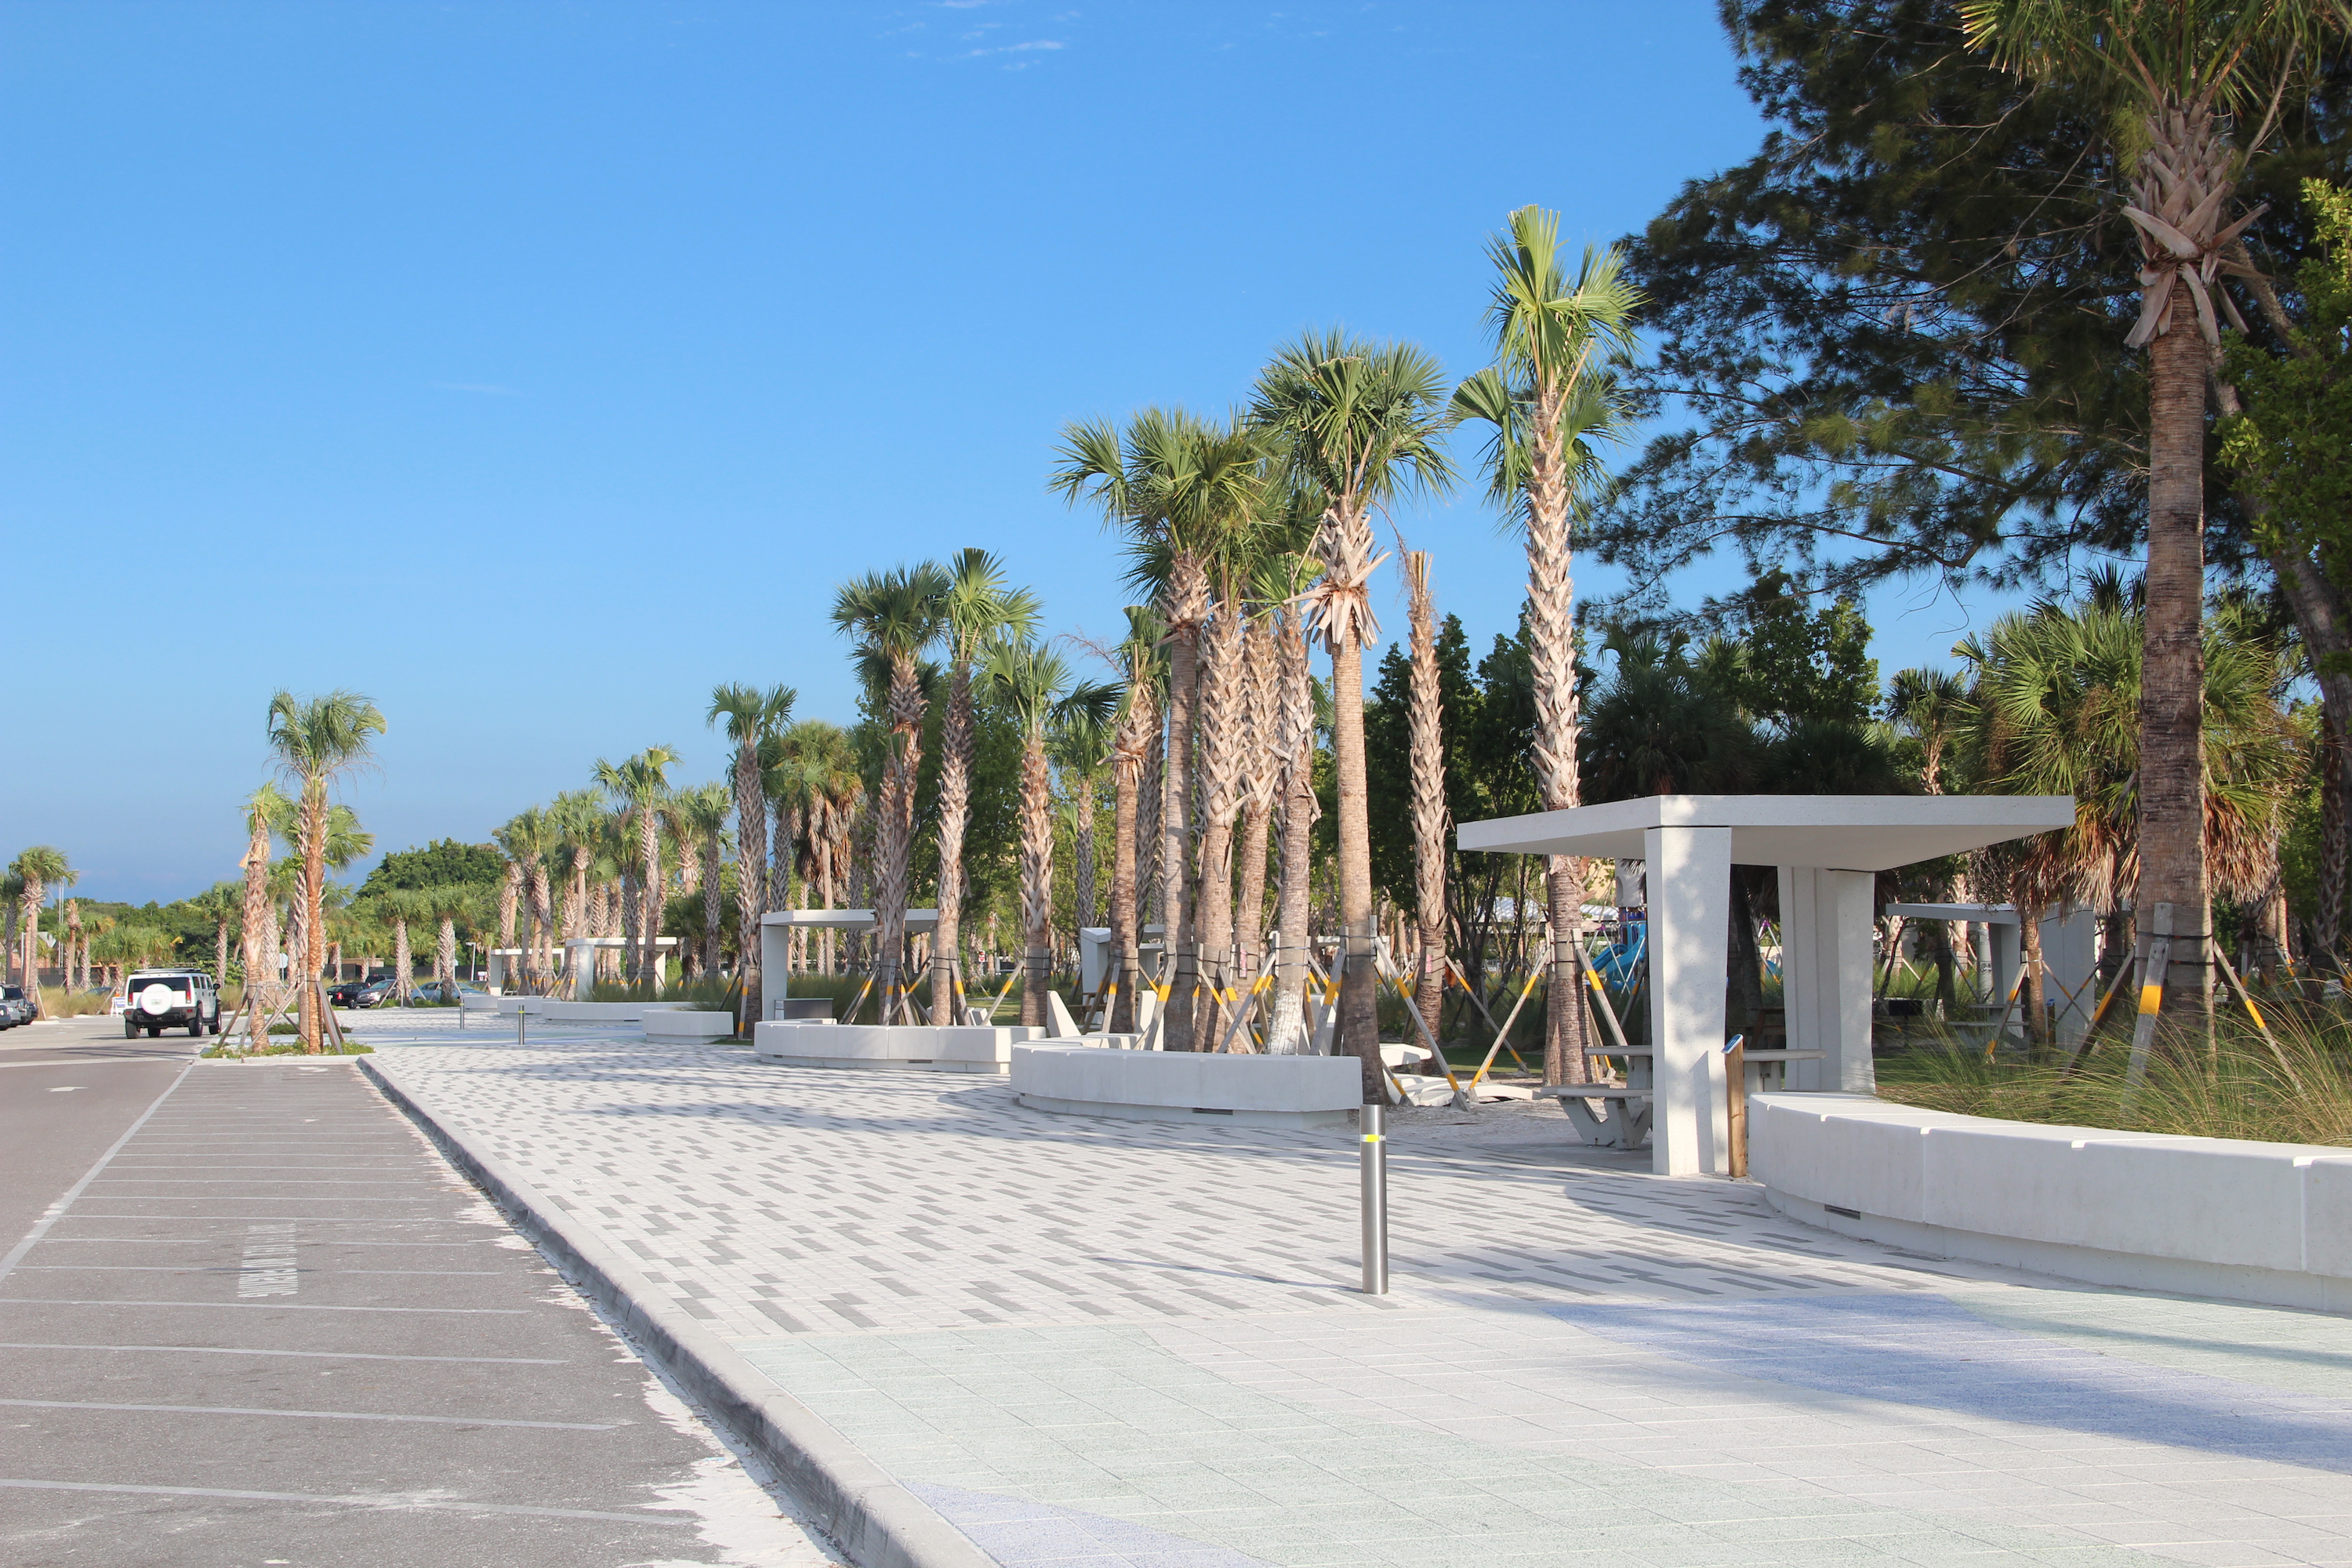 New Concrete Picnic Shelters Stand Adjacent To The Promenade At Siesta Public Beach Rachel Hackney